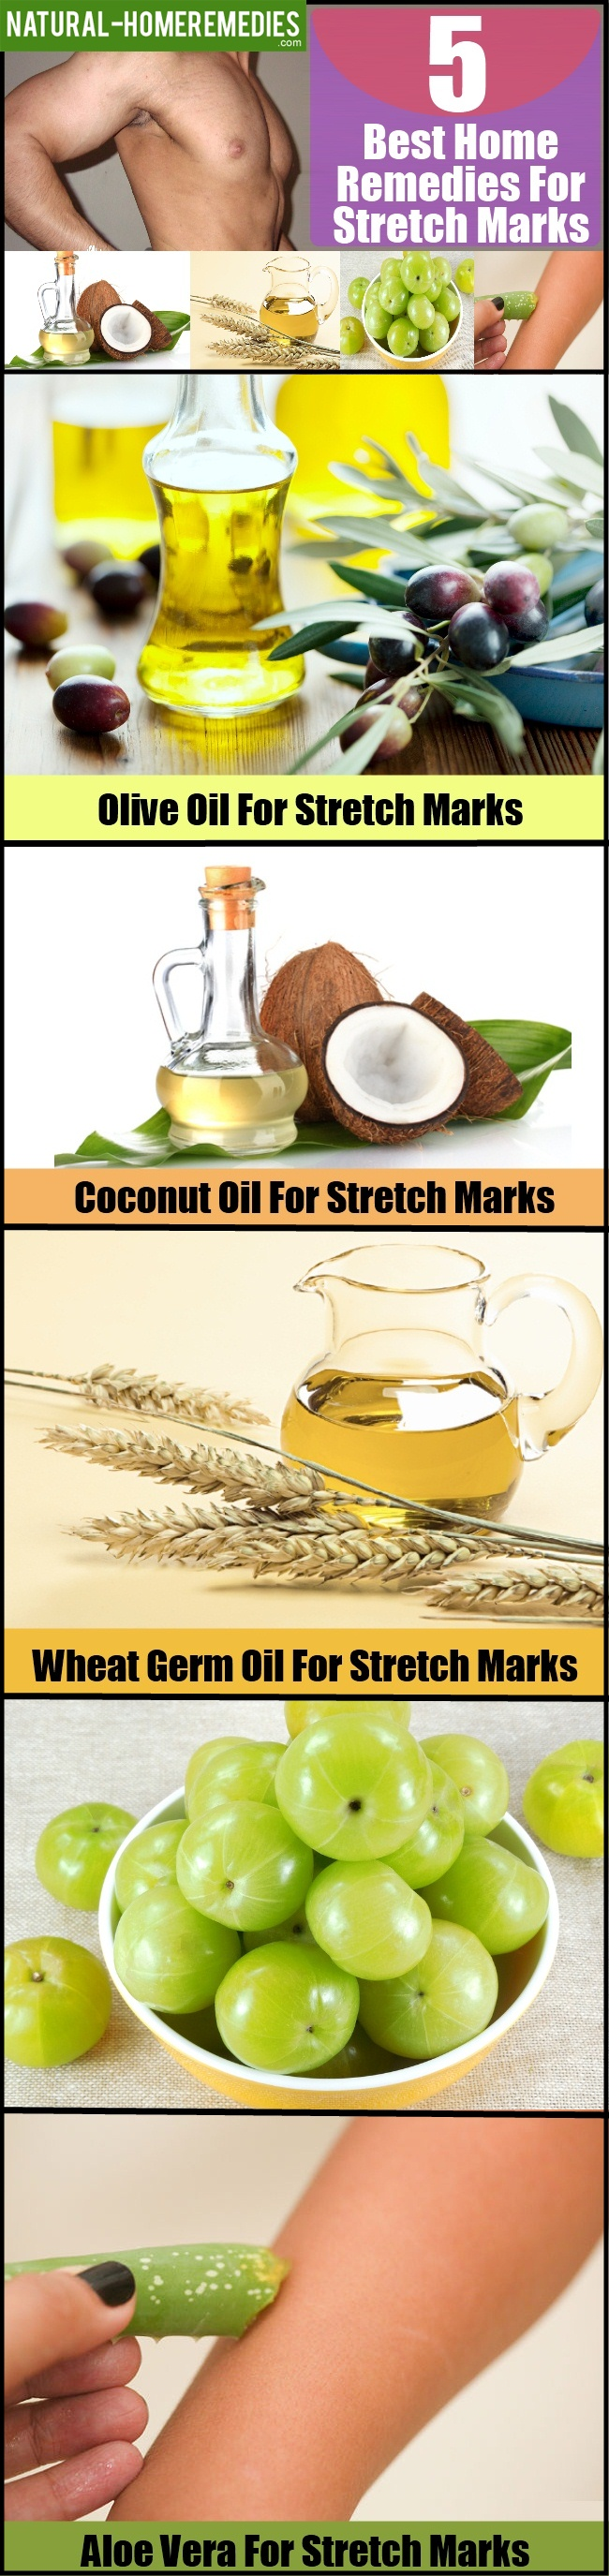 5 Best Home Remedies For Stretch Marks